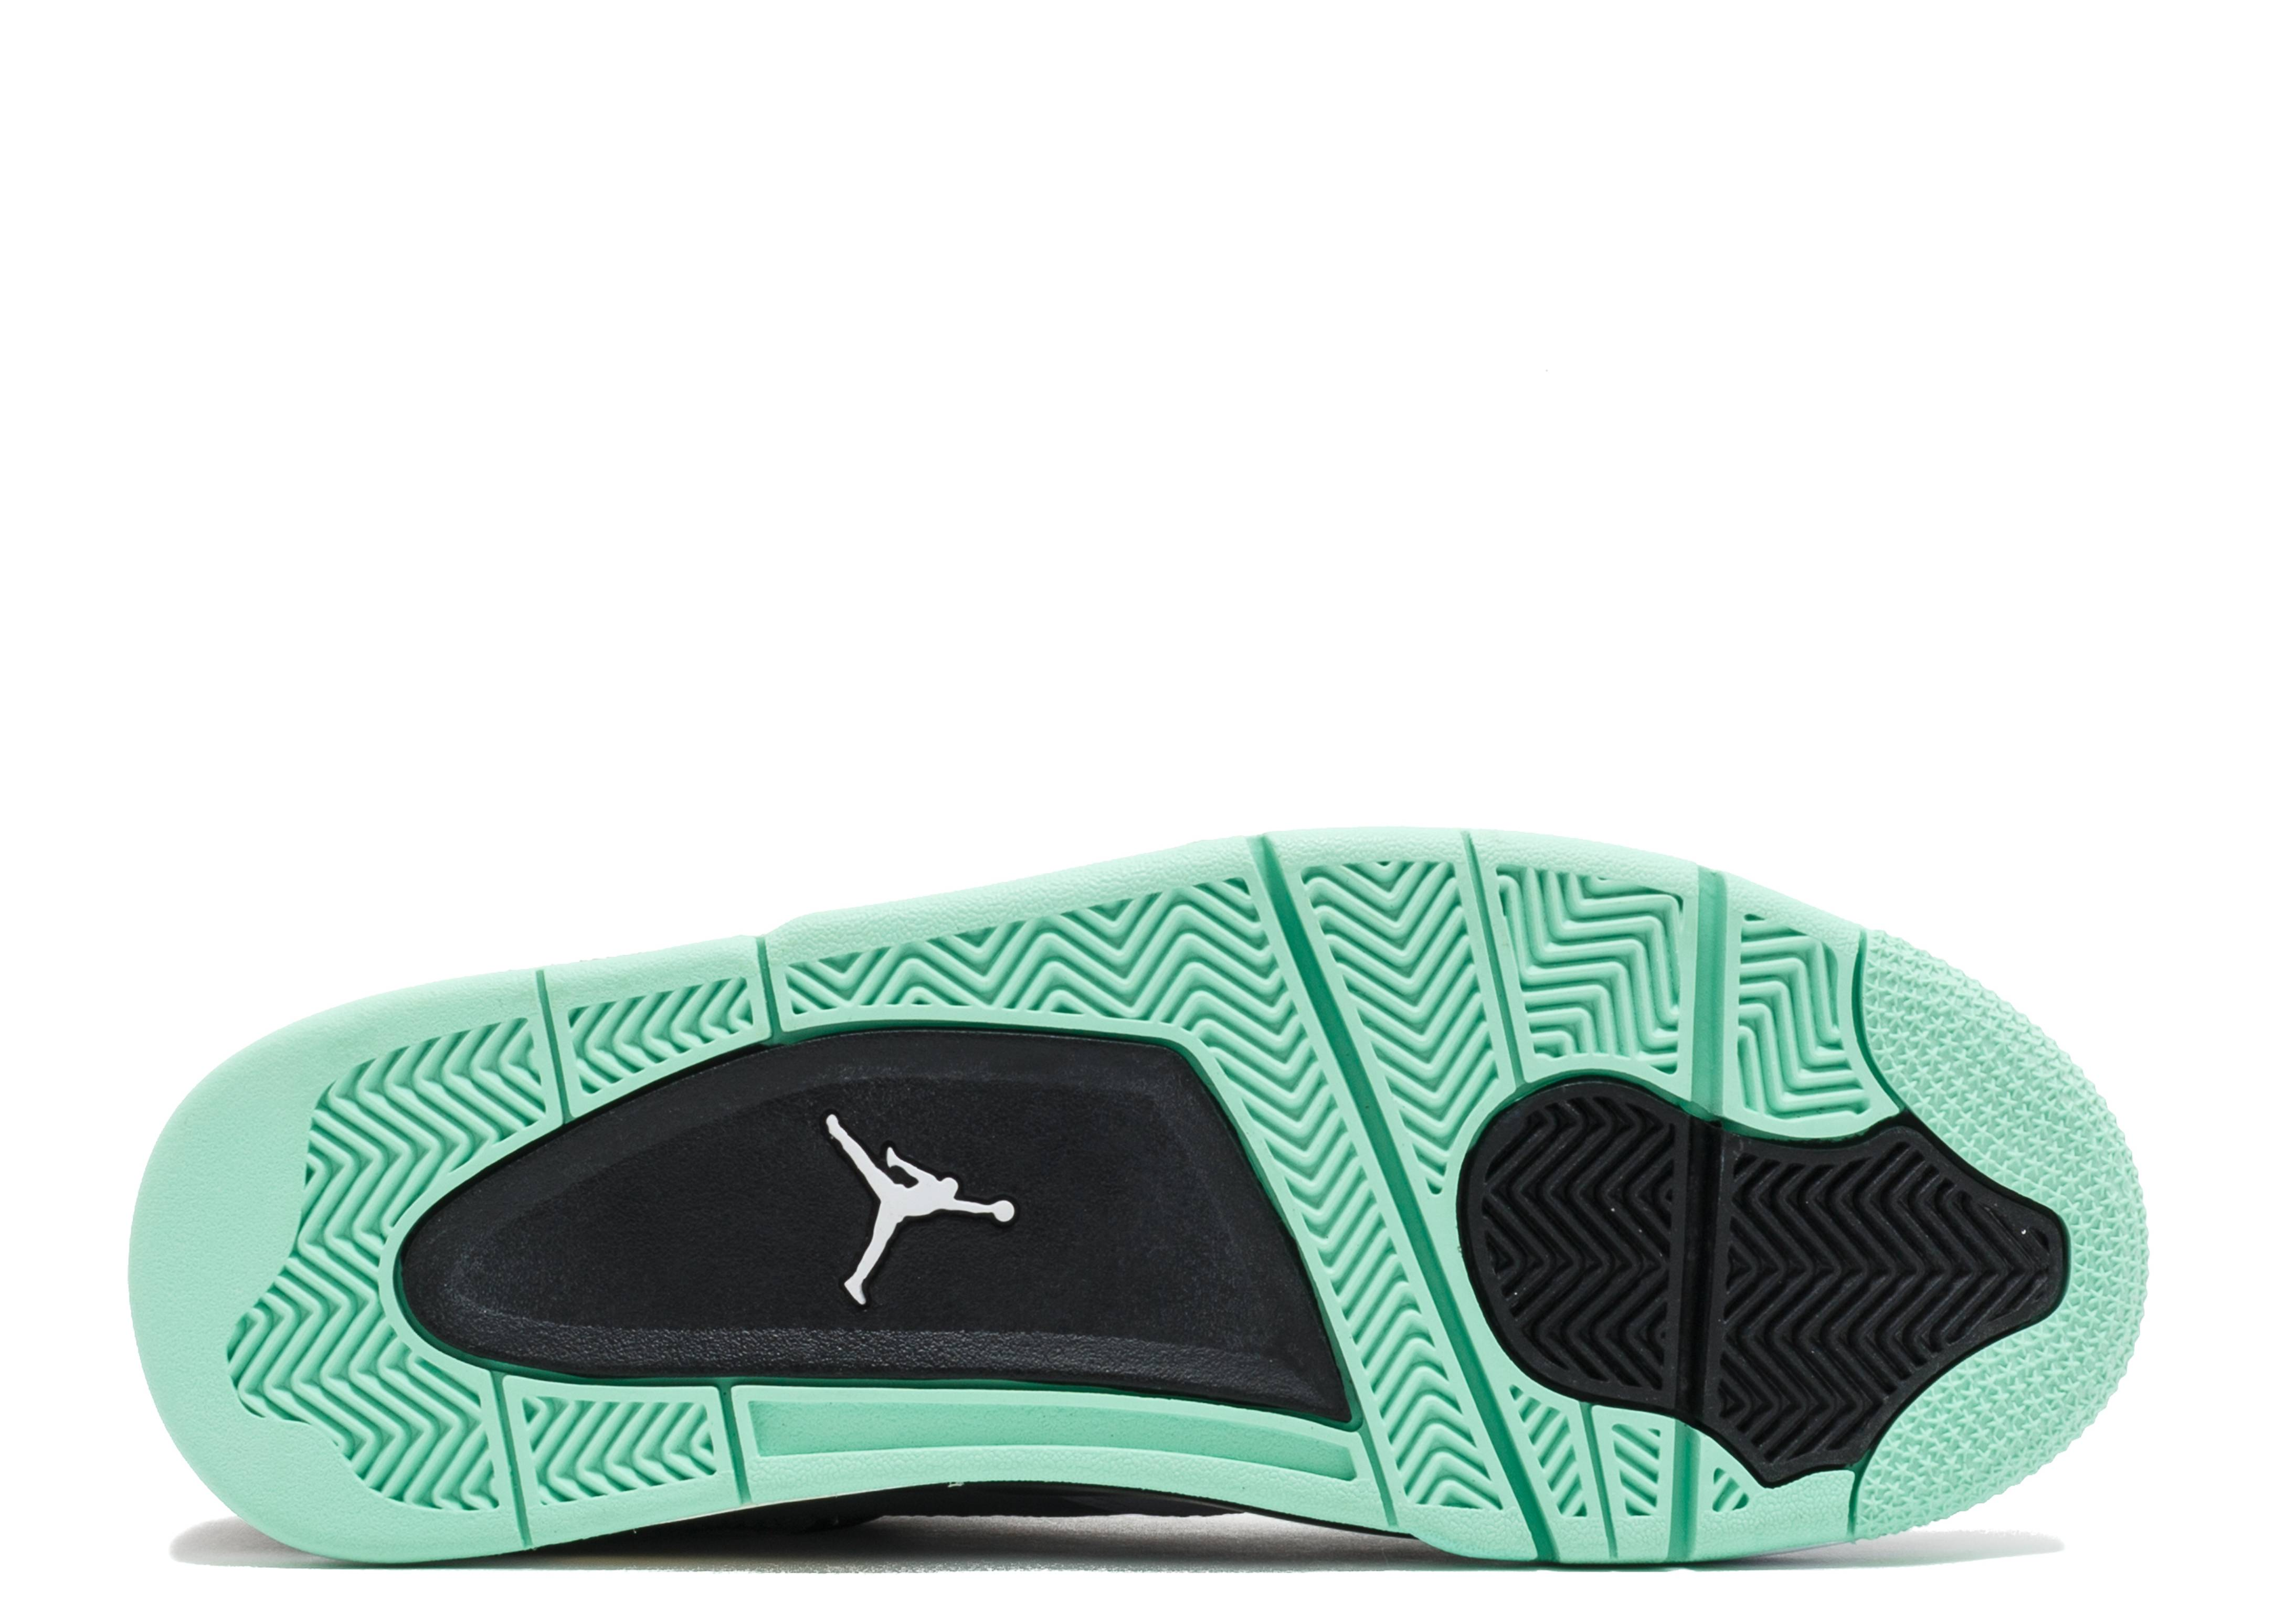 detailed look 17d45 9bf2f coupon for how much do the air jordan 4 vert glow cost 184ae ...